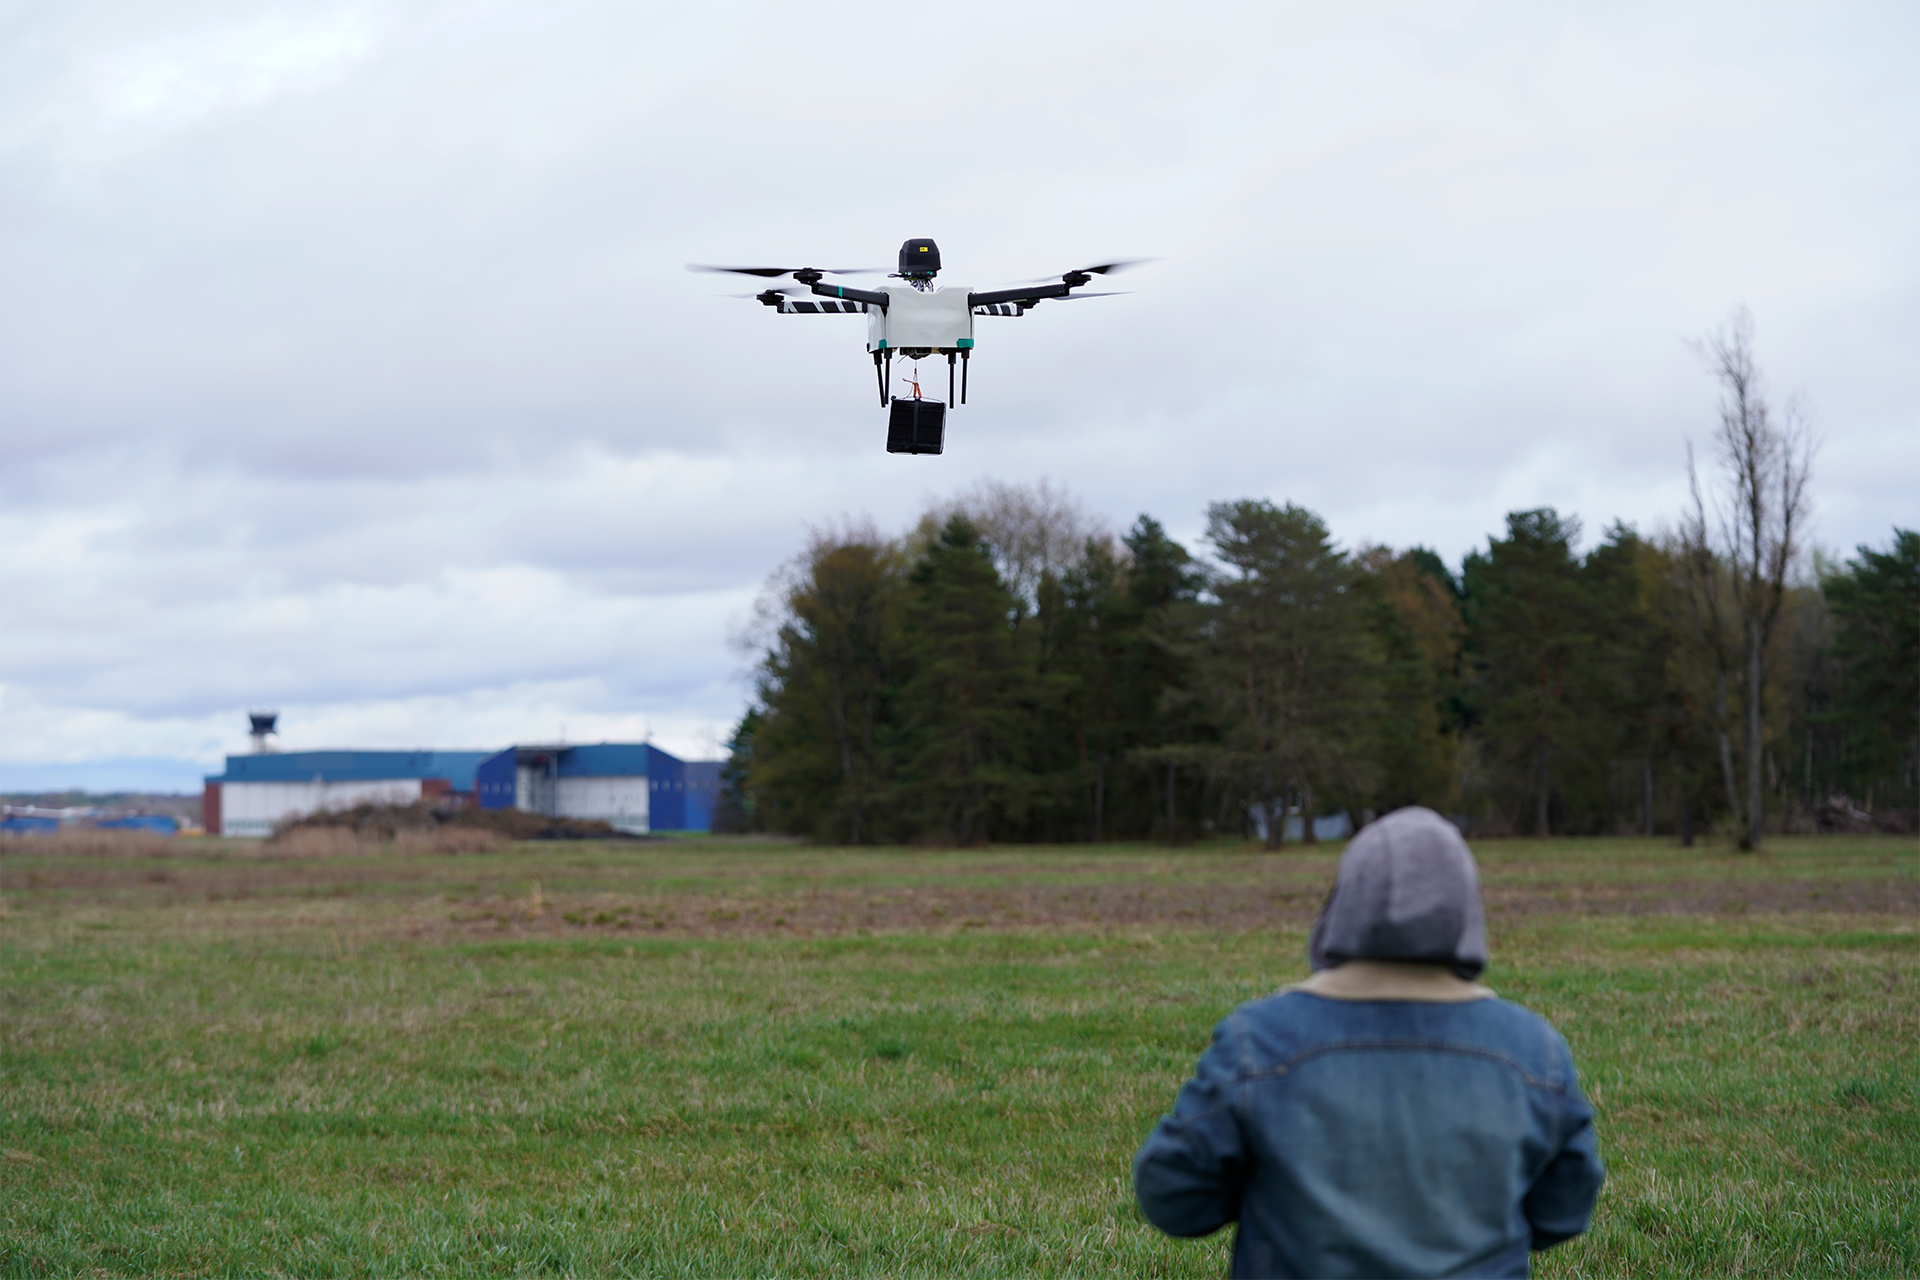 Horsefly Takes Off with AVSS Parachute at NY UAS Test Site